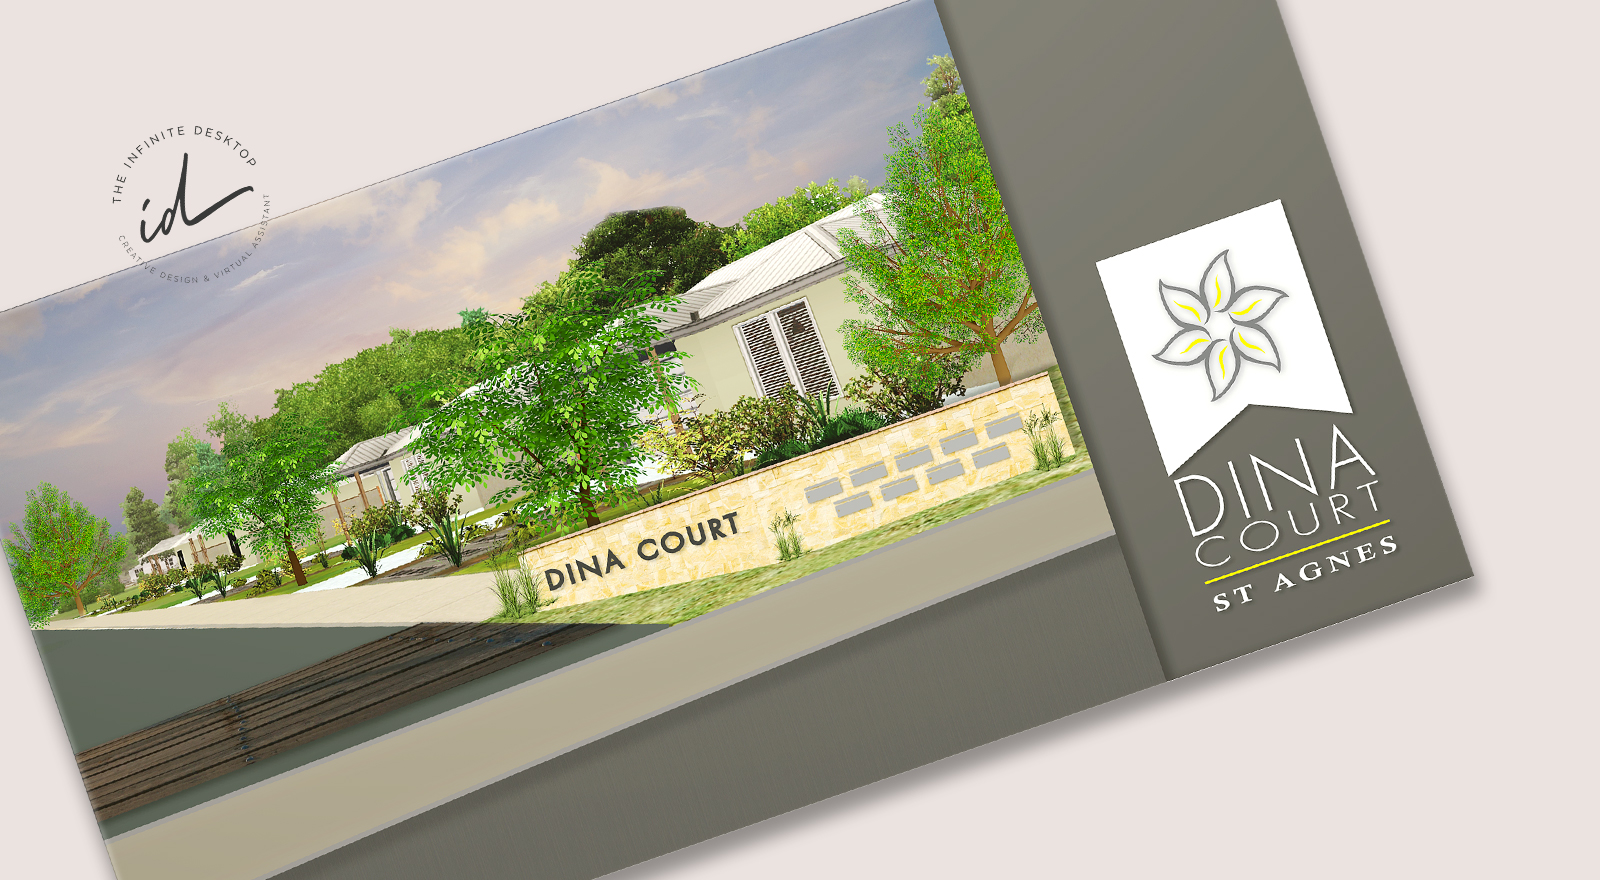 Artist impression for Residential Land Development - Dina Court St Agnes